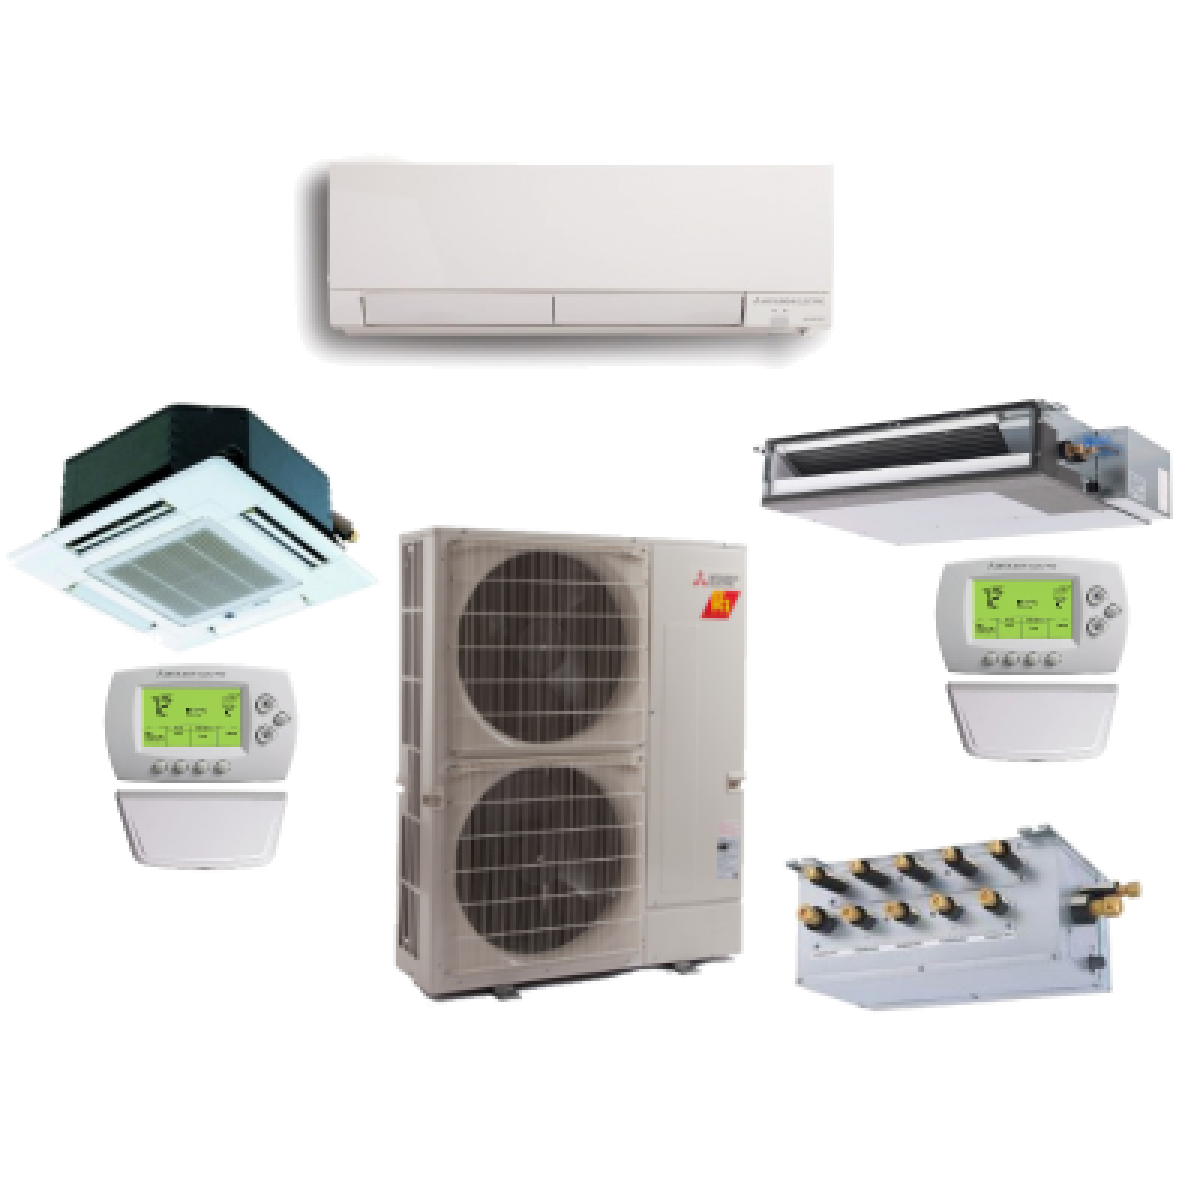 Ac Unit Prices >> Mitsubishi 4 Zone 36K BTU Heat Pump Hyper Heat With up to Four Indoor Units in Multi Zone ...